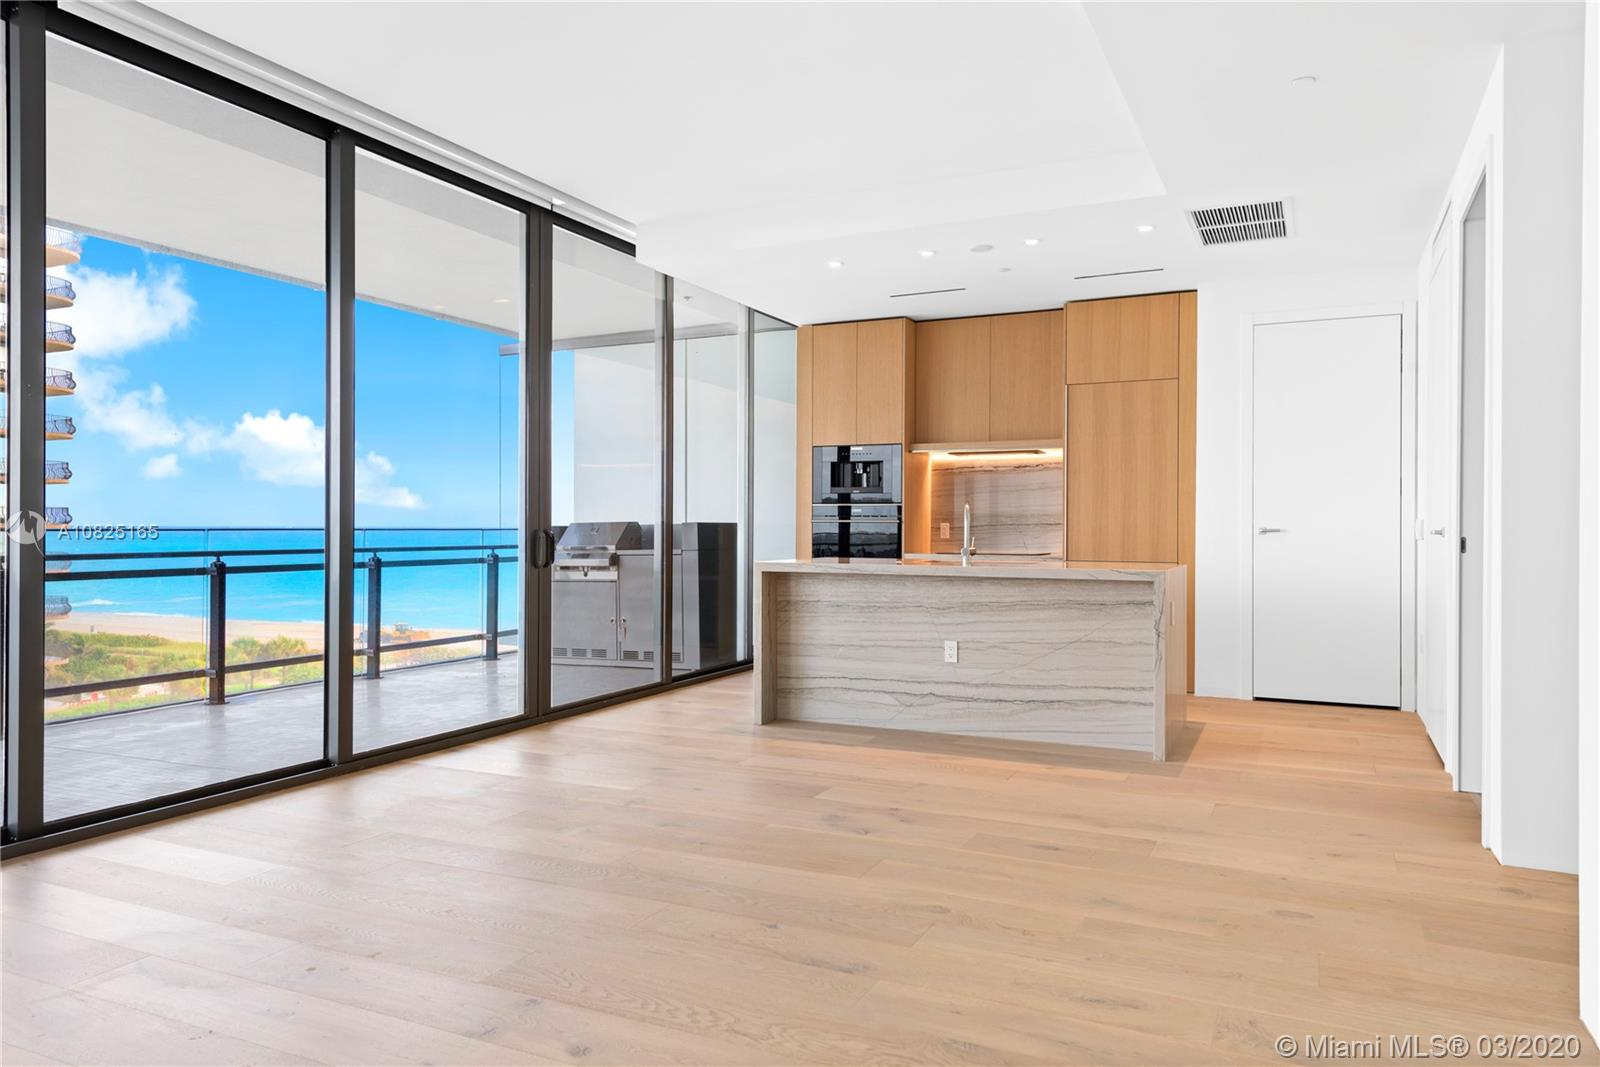 Expansive 1-bedroom 1.5 bathroom residence with over 1,000 sq ft at Renzo Piano's spectacular 87 Park in Miami Beach. Gorgeous Ocean and Beach views from bedroom, living and dining room. Telescopic patio doors that open wide to the deep, oversized  terrace with summer kitchen.  Look down over the private 2-acre park. French oak wood floors with natural stone floors/walls in the bathroom.  Wolf & subzero appliances, natural stone kitchen island countertop & back splash. 87 Park offers hotel-like service by its professional staff.  Amenities include Botanical Garden, Enoteca and Fugo Bar managed by Toscana Di Vino, 2 pools, gym+spa, Hamamm and private park